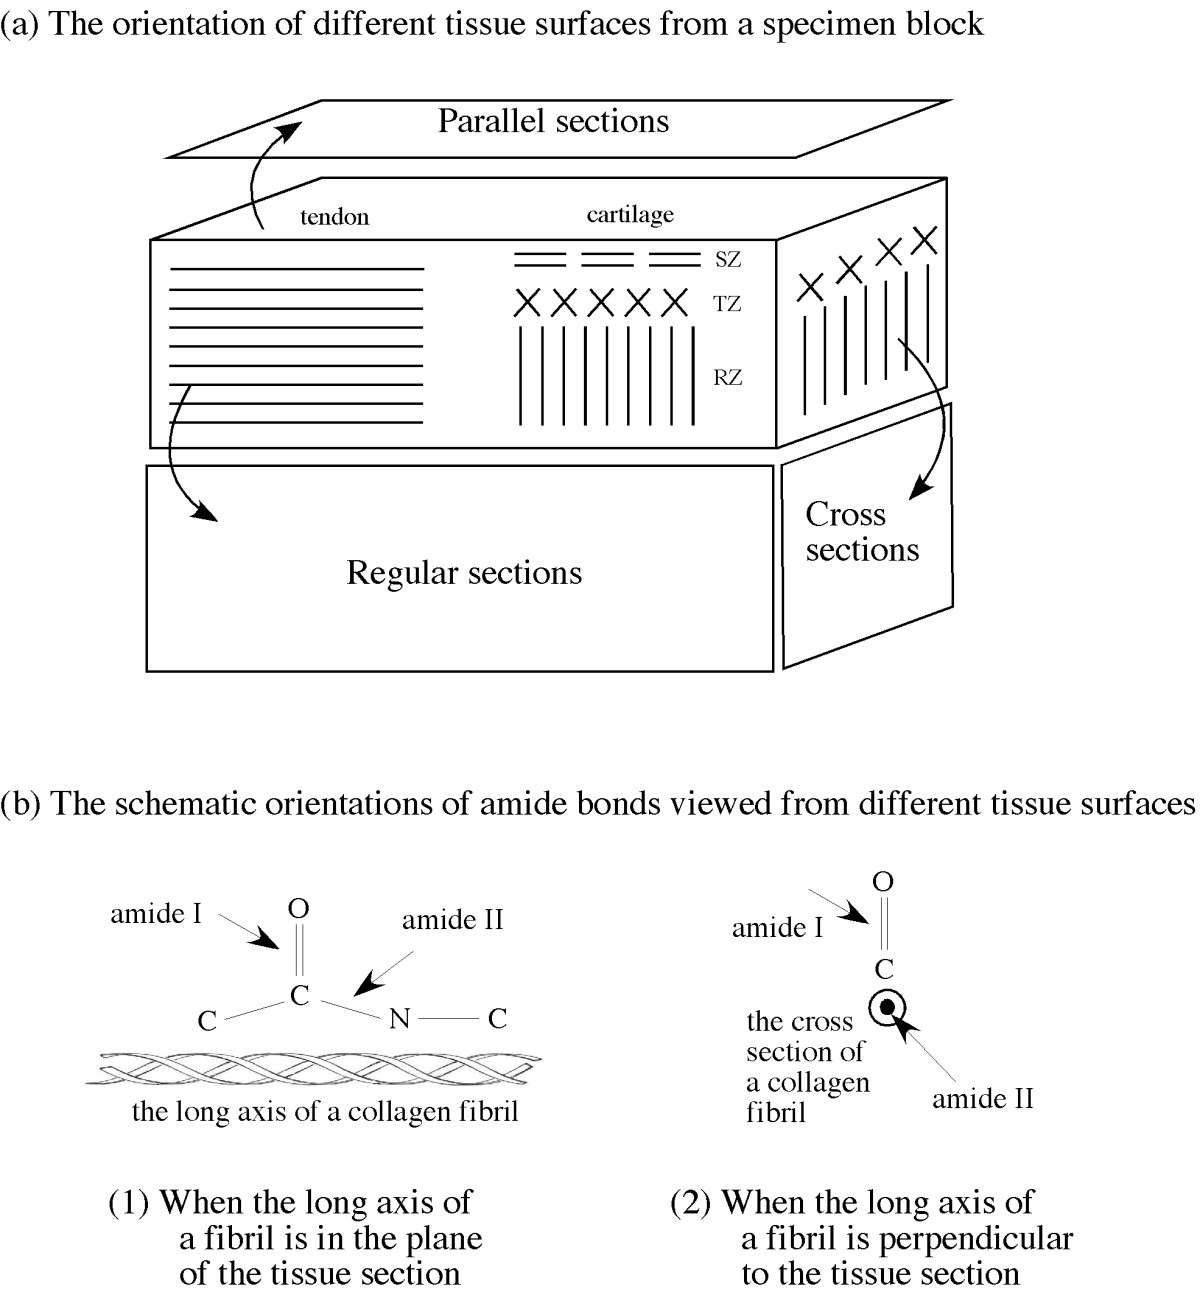 http://static-content.springer.com/image/art%3A10.1186%2F1749-799X-3-48/MediaObjects/13018_2008_Article_93_Fig1_HTML.jpg